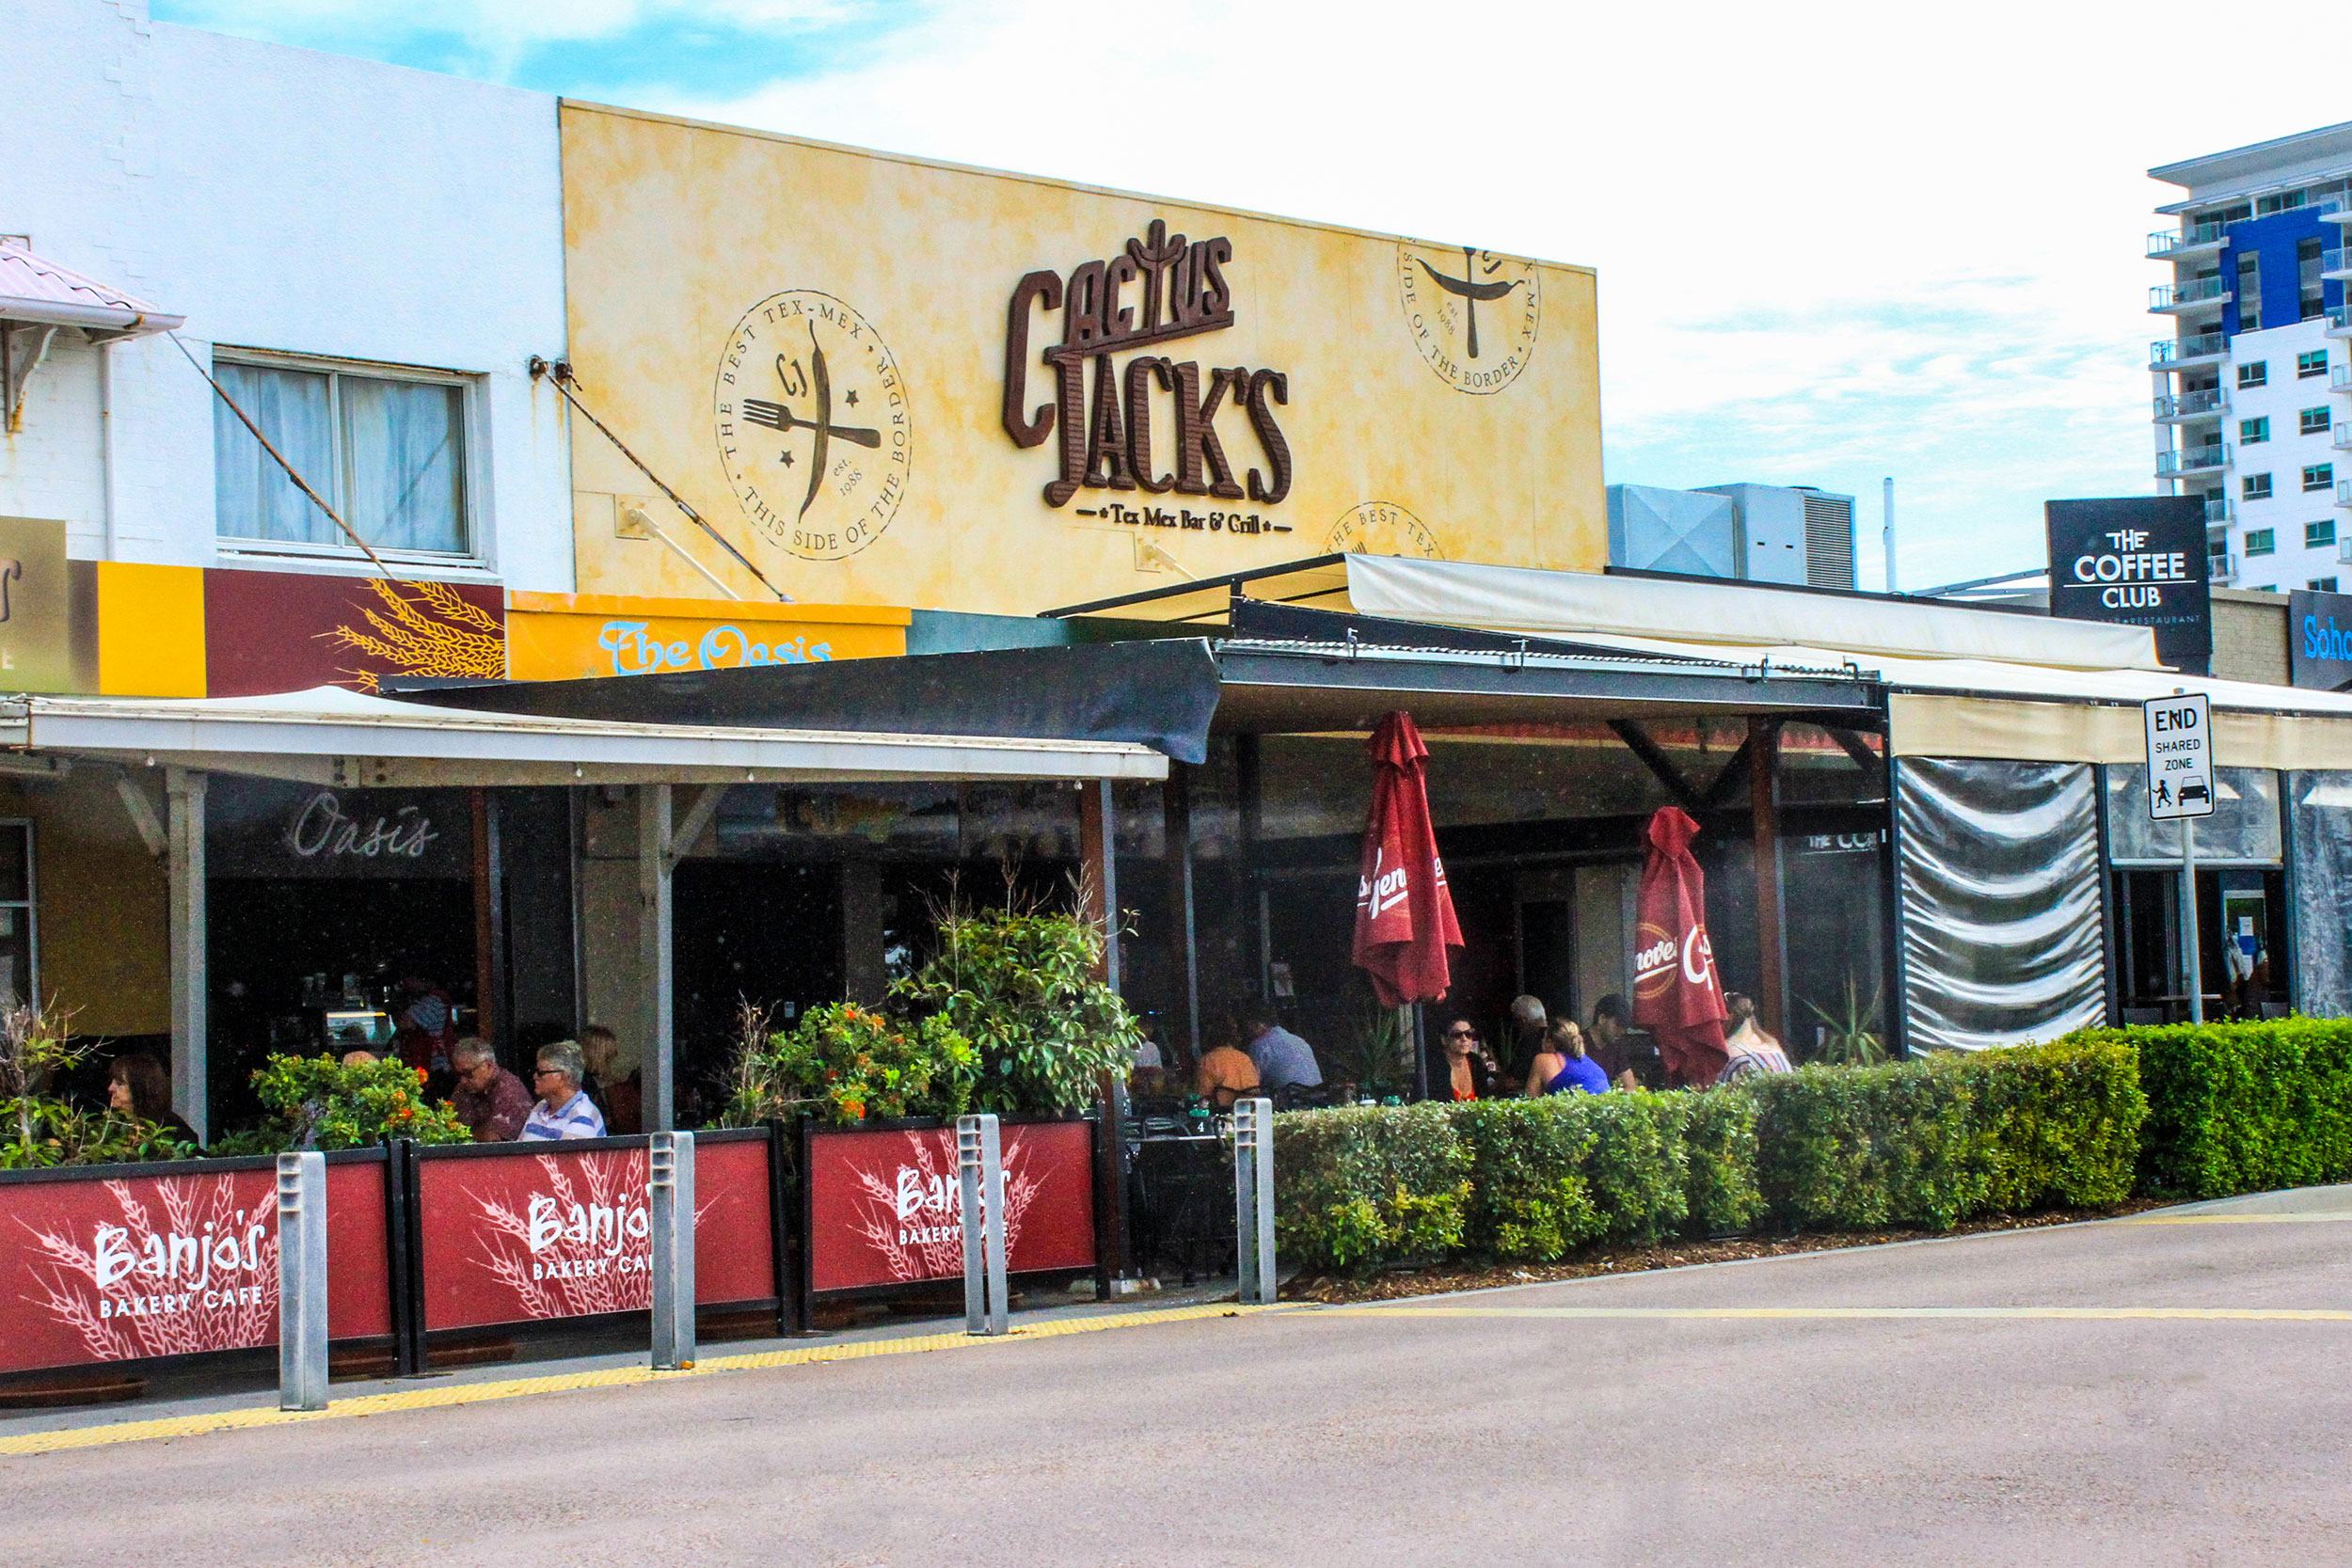 Name : Cactus Jack's – Redcliffe